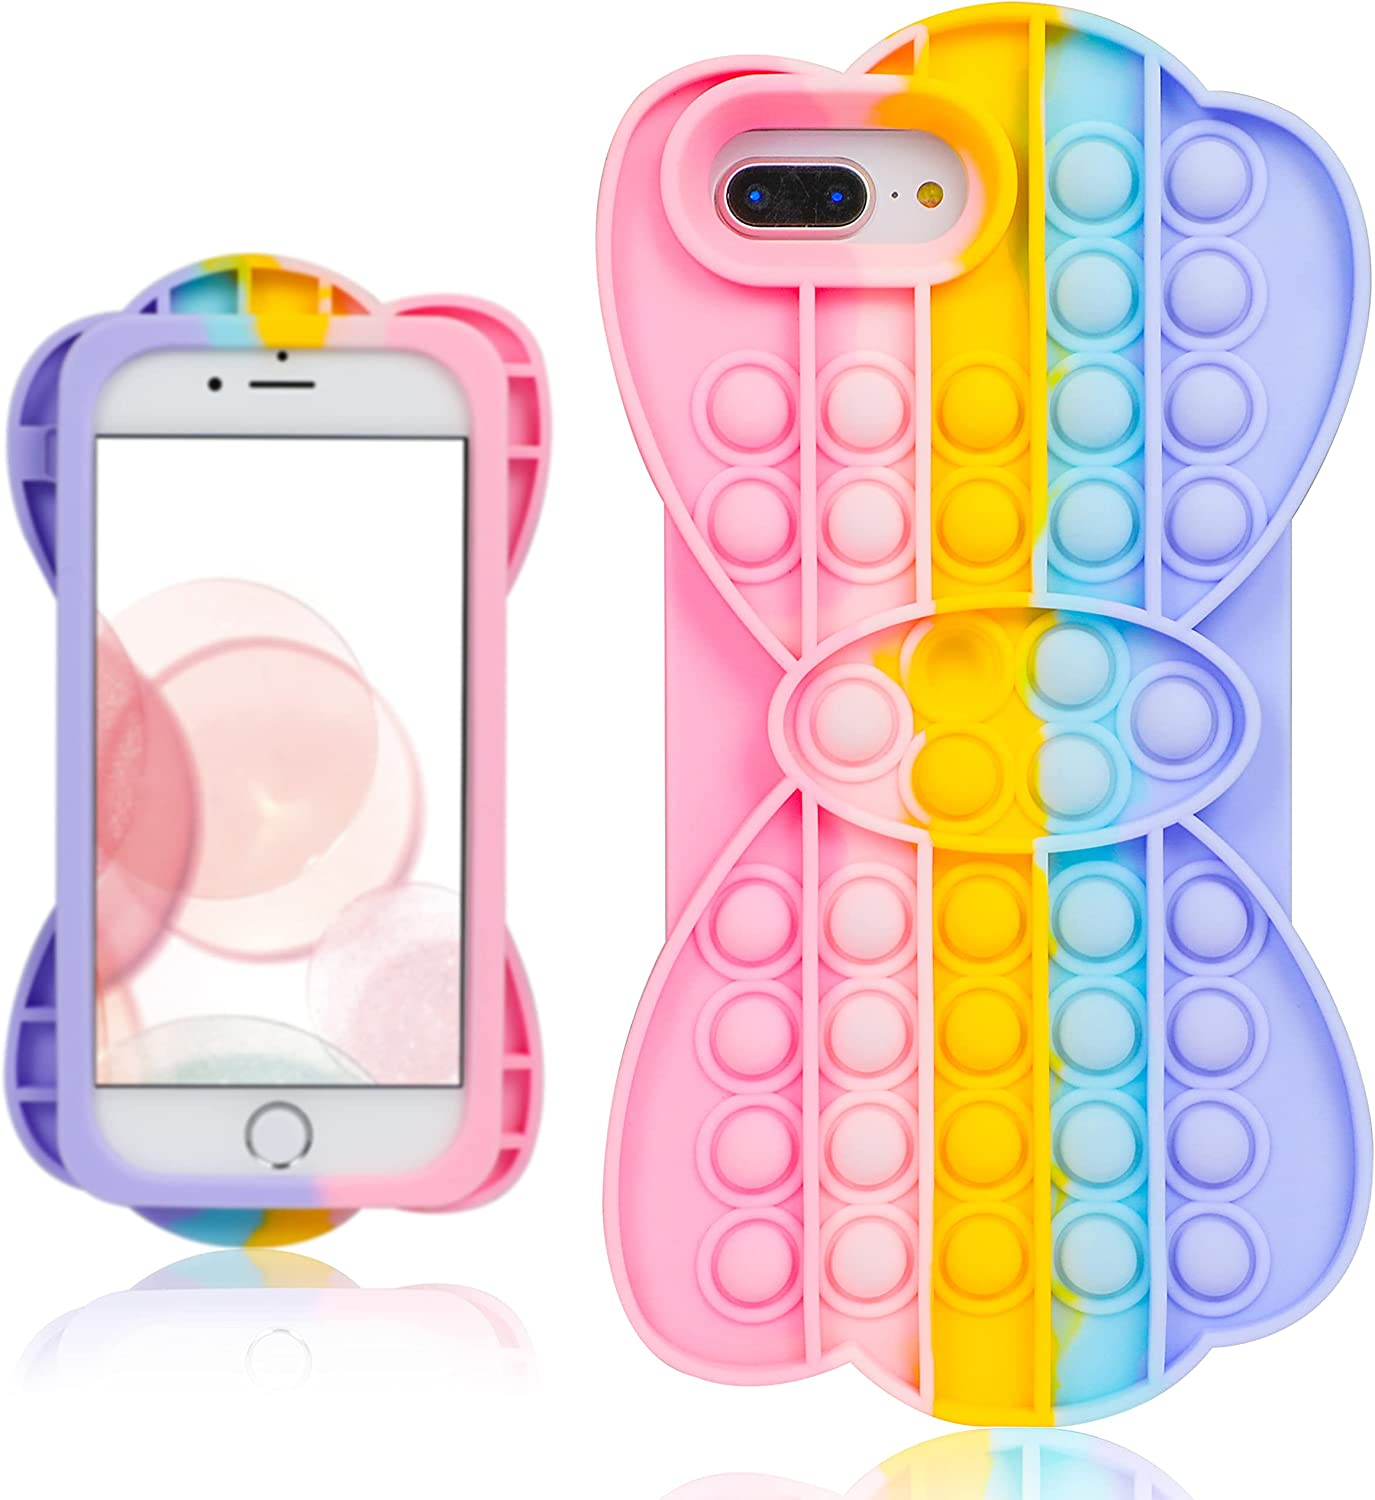 oqpa for iPhone 7 Plus/8 Plus/6 Plus/6S Plus Case Kawaii Funny Cute Fun Silicone Design Cover for Girls Kids Boys Teen Fashion Cool Unique Fidget Bow Bubble Cases (for iPhone 6/7/8 Plus 5.5